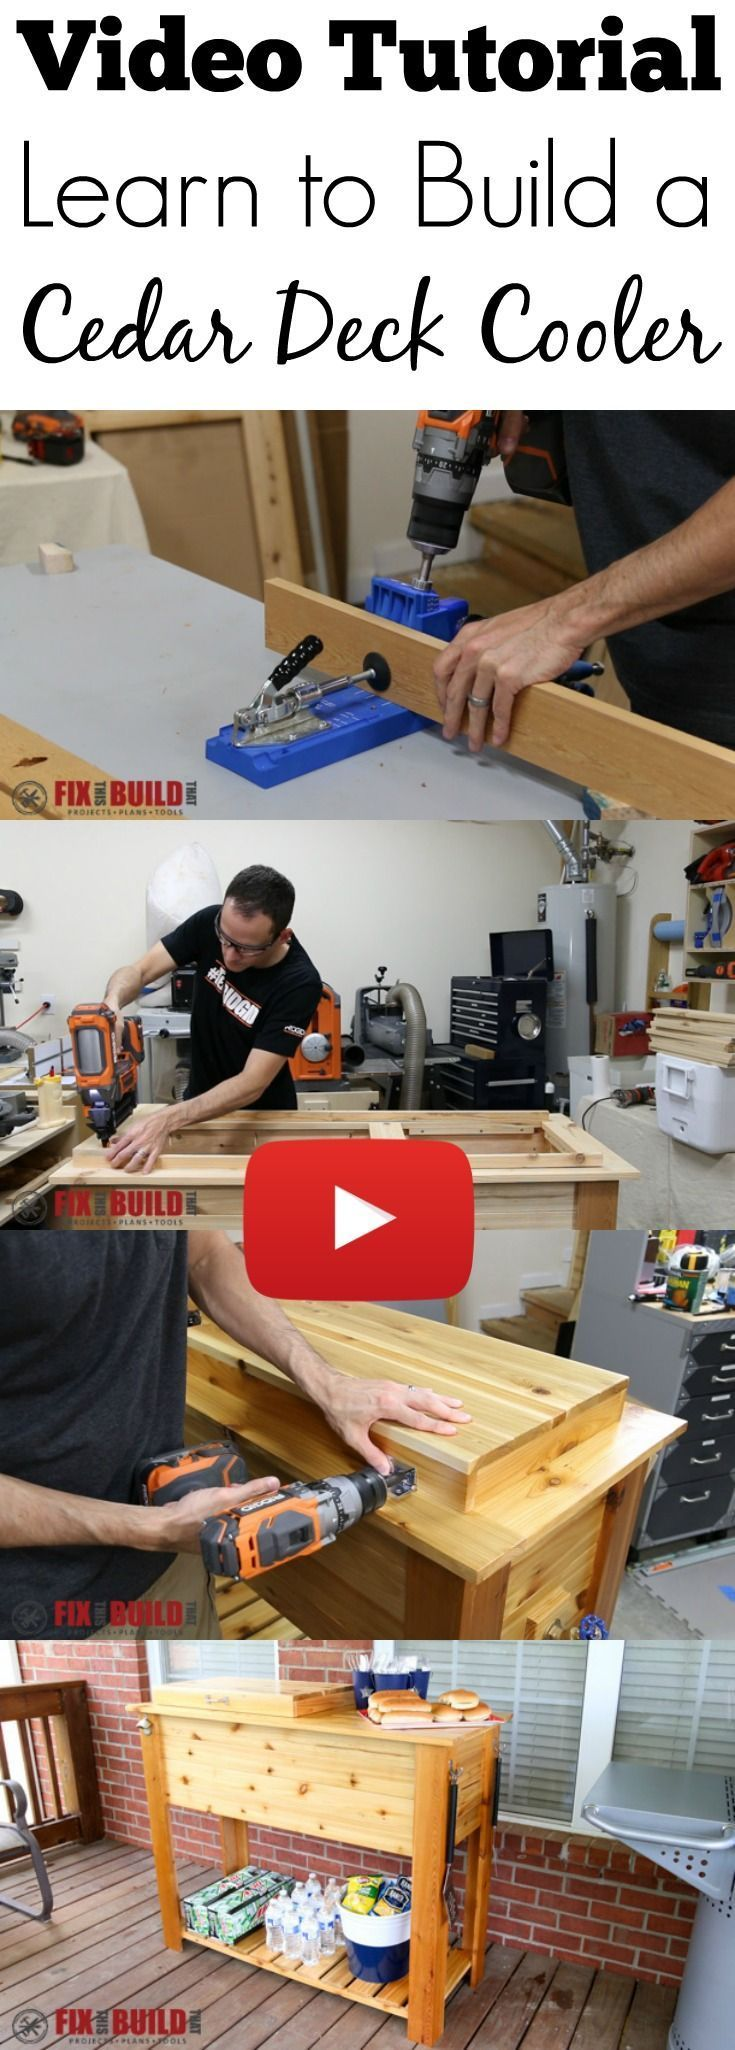 Full video build tutorial on how to build a Cedar Deck Cooler.  This ice box wil...